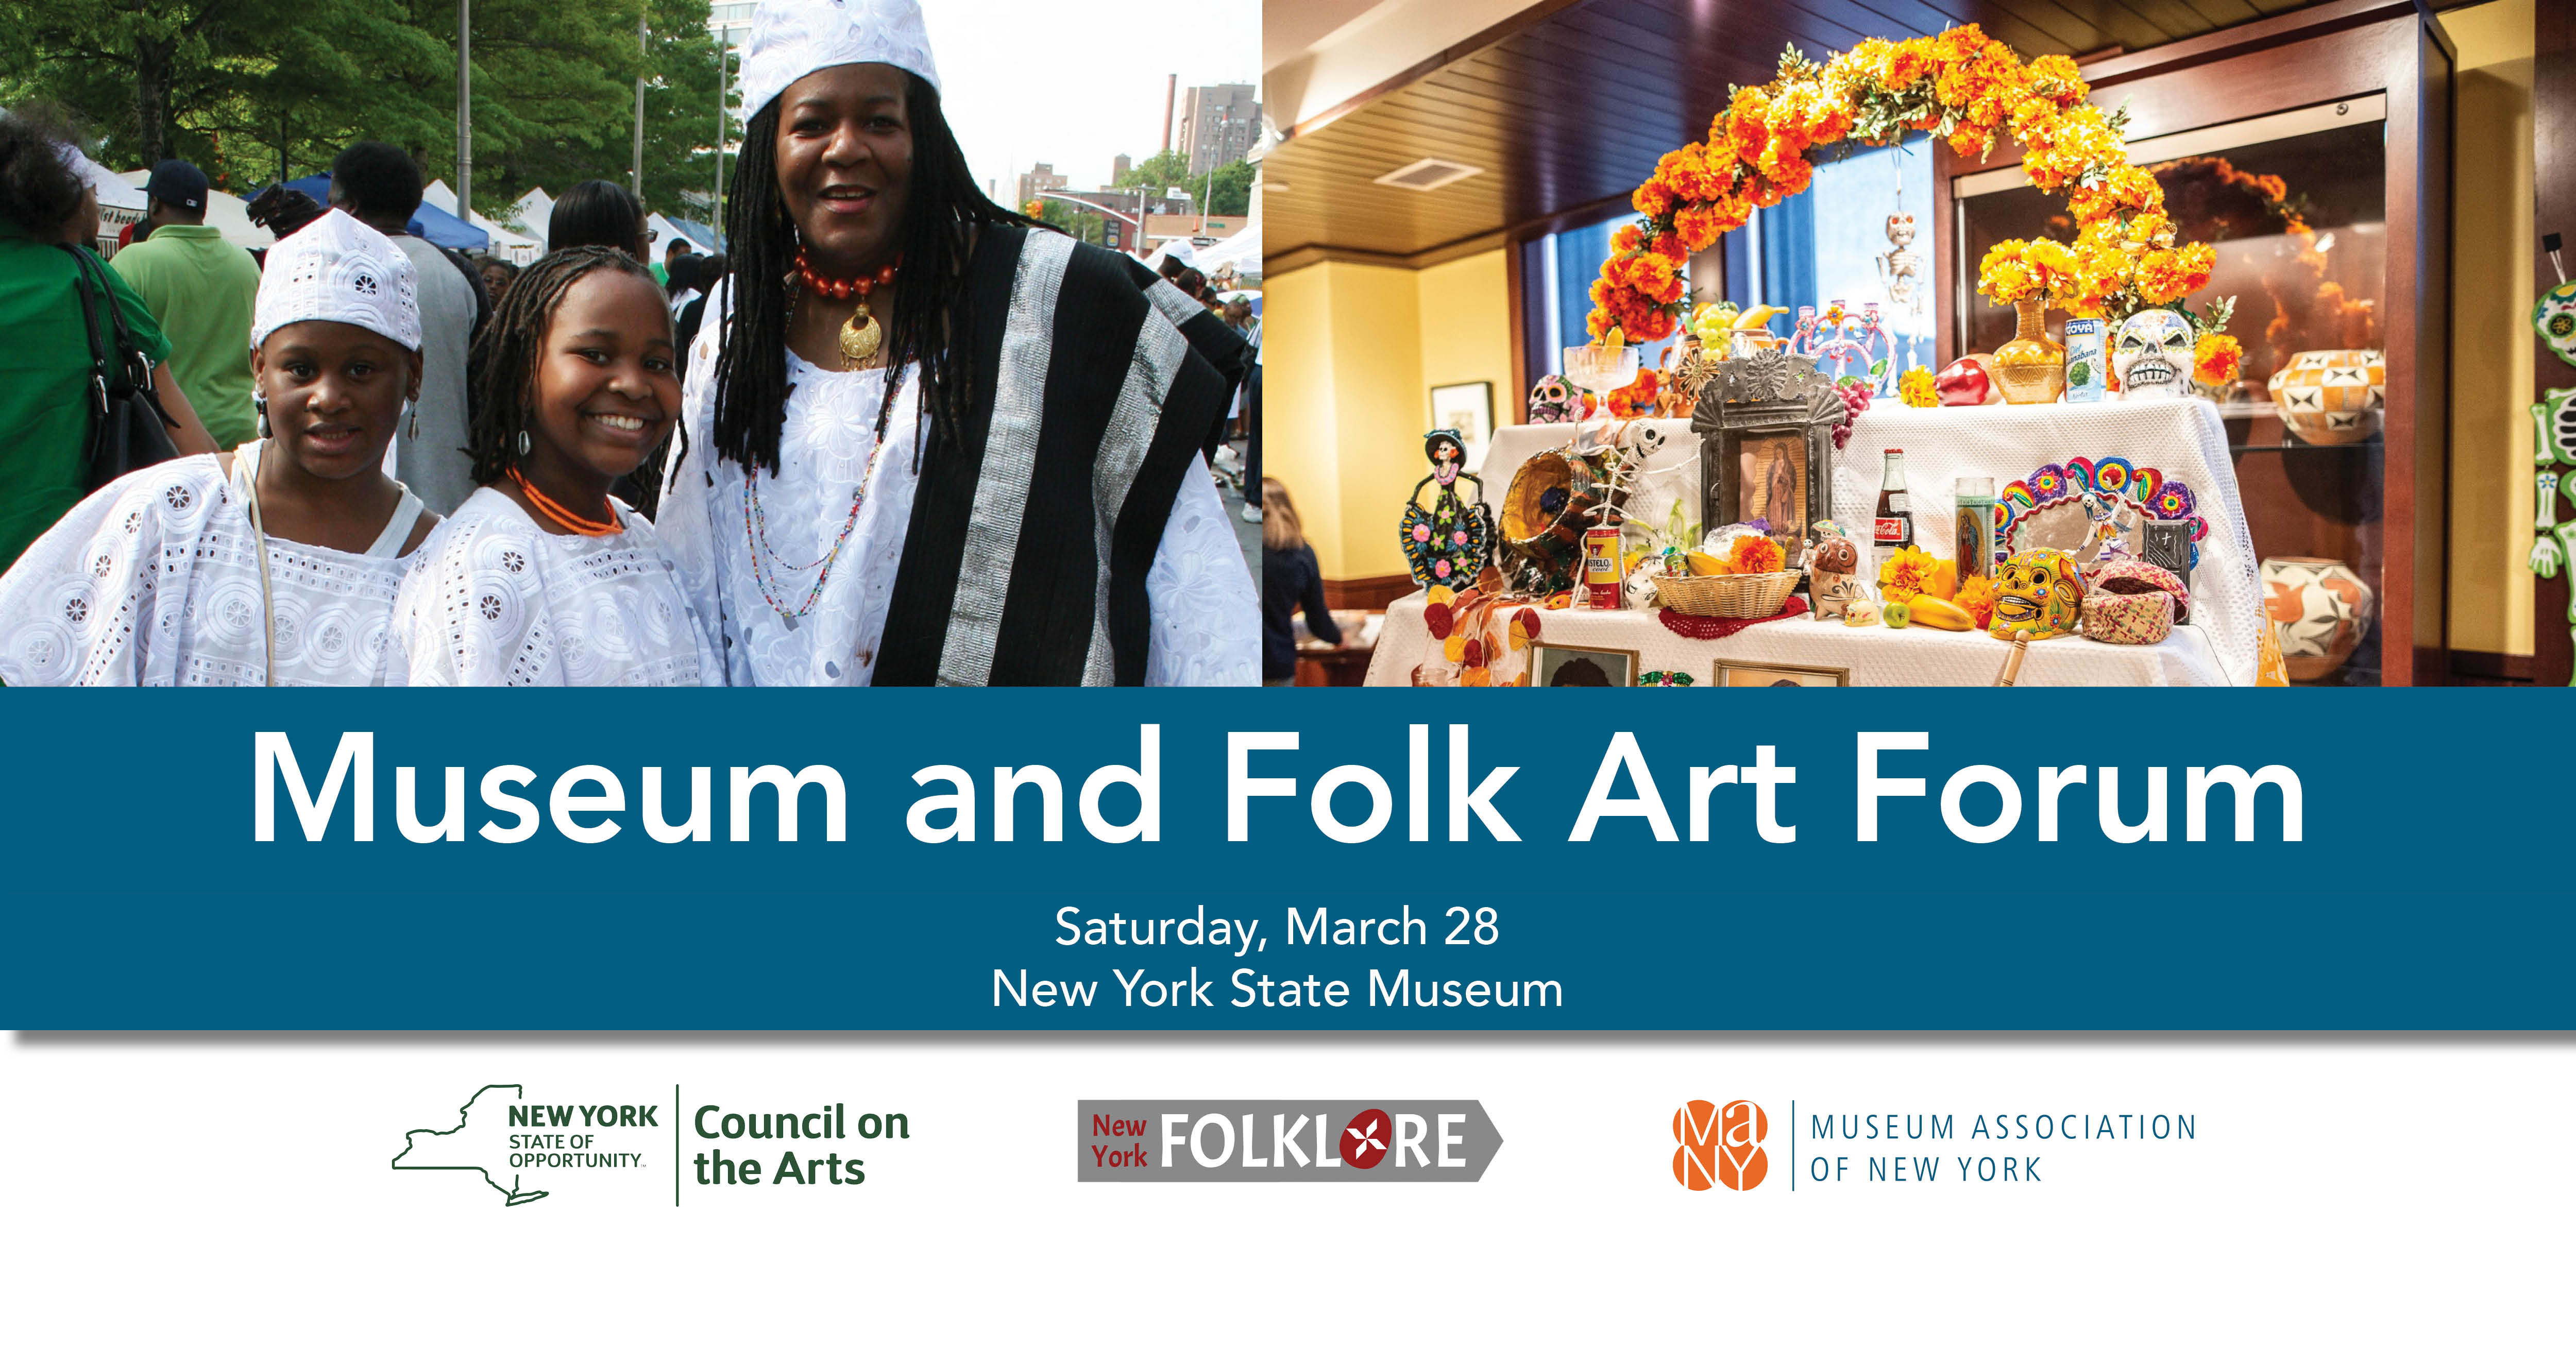 Museum and Folk Art Forum banner ad